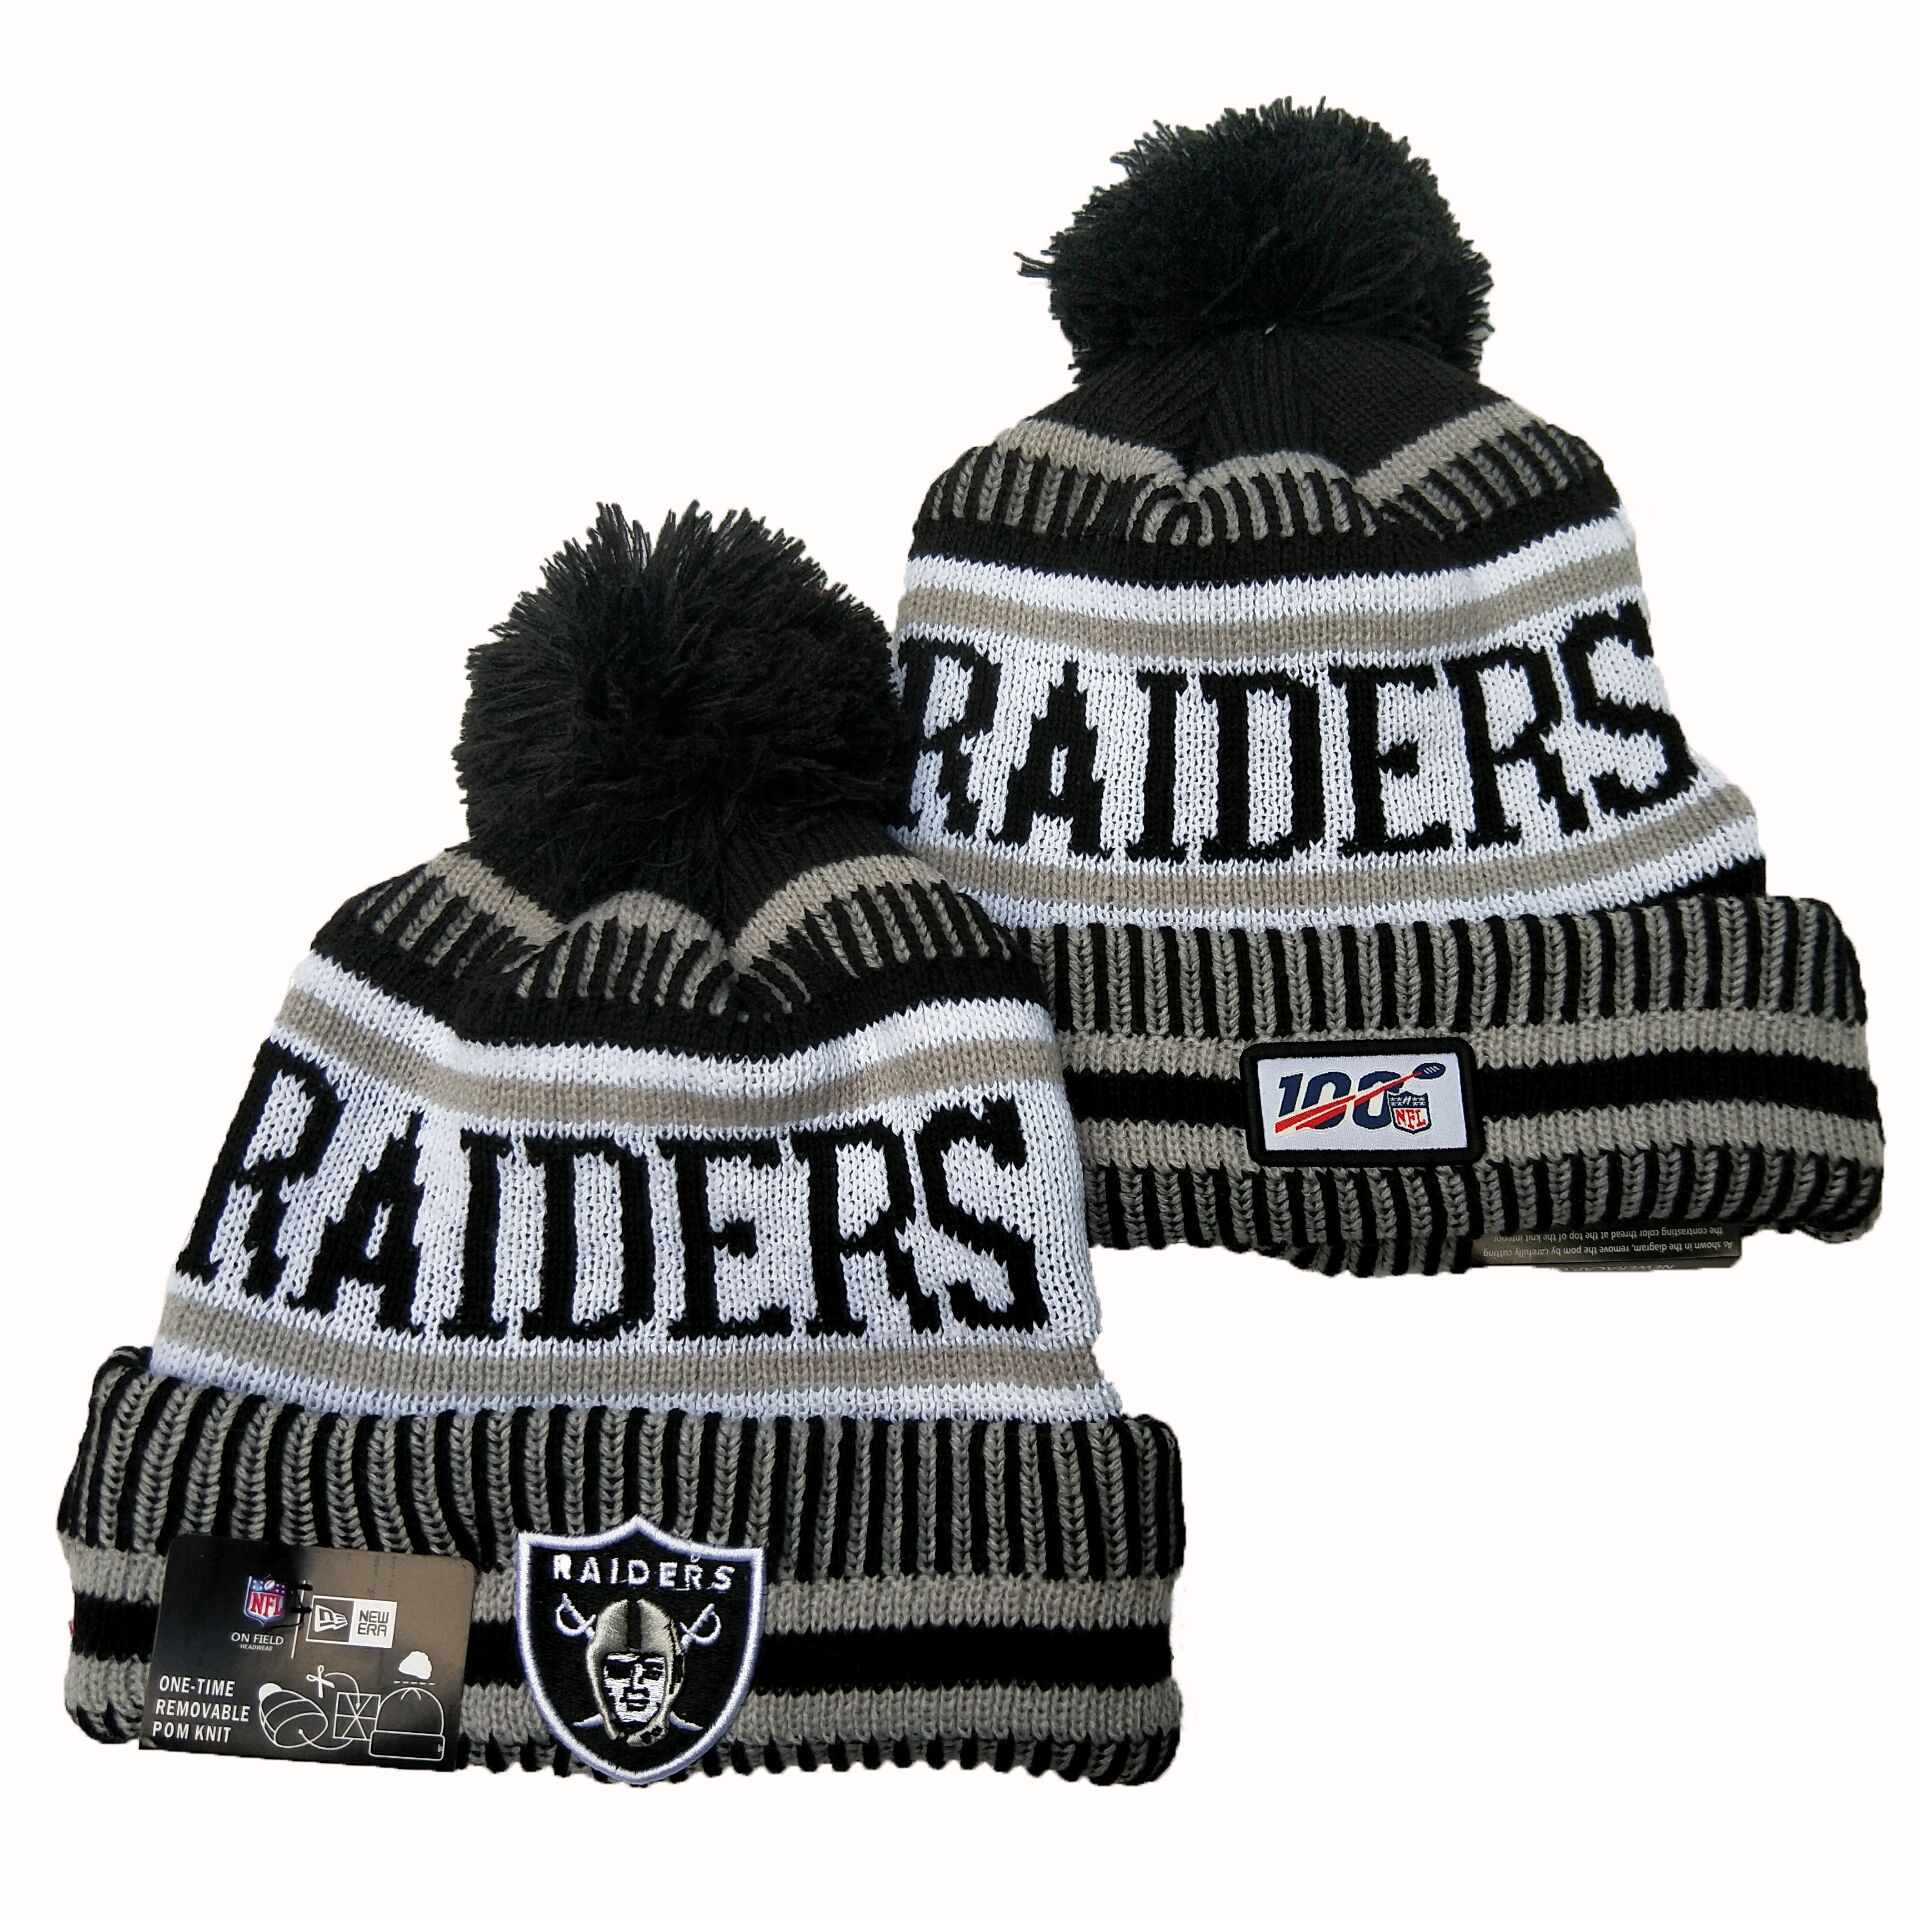 Las Vegas Raiders Knit Hats 067